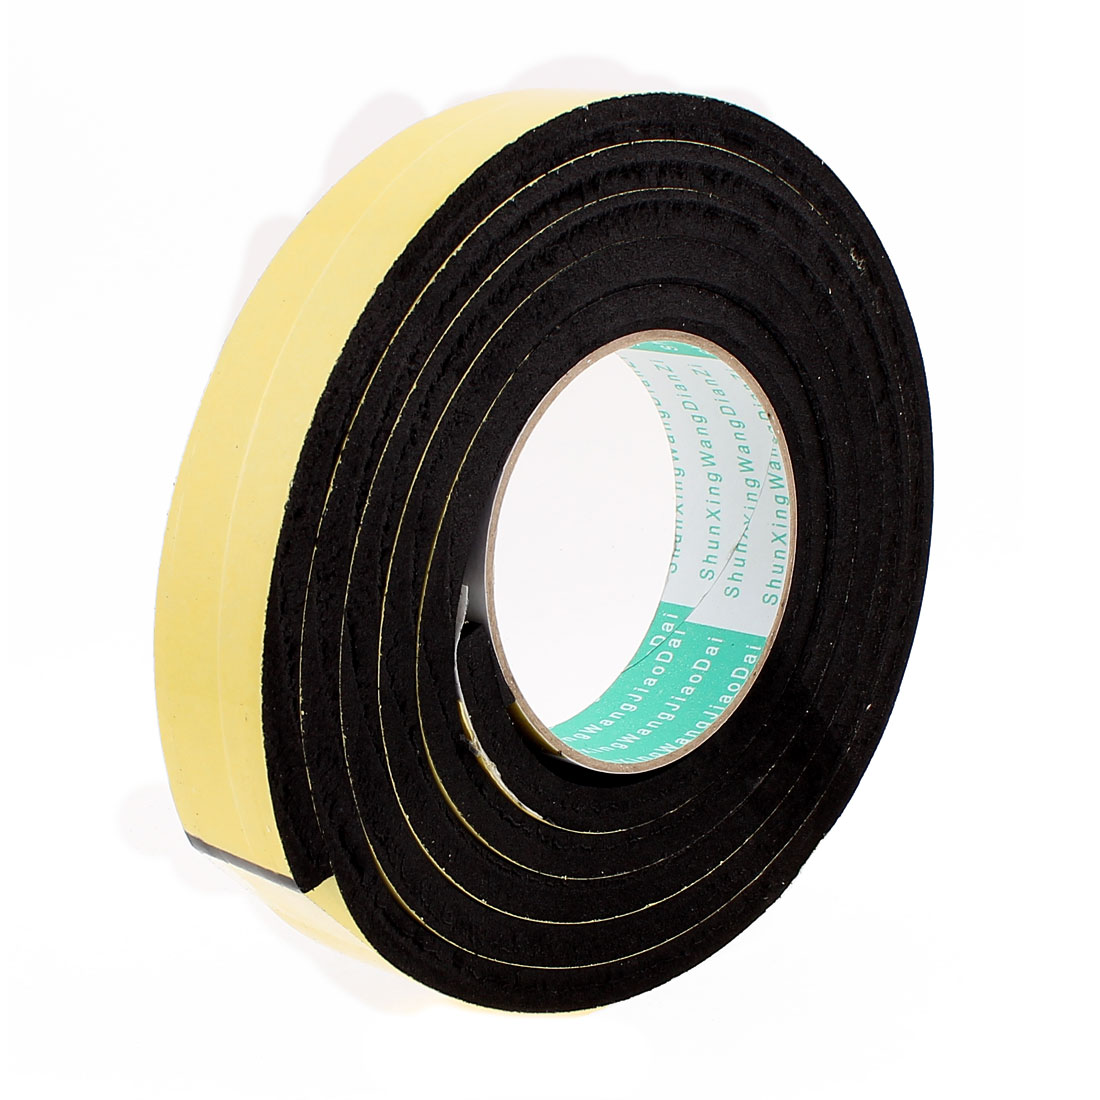 2 Meters 30mm x 8mm Single Side Adhesive EVA Foam Sealing Tap